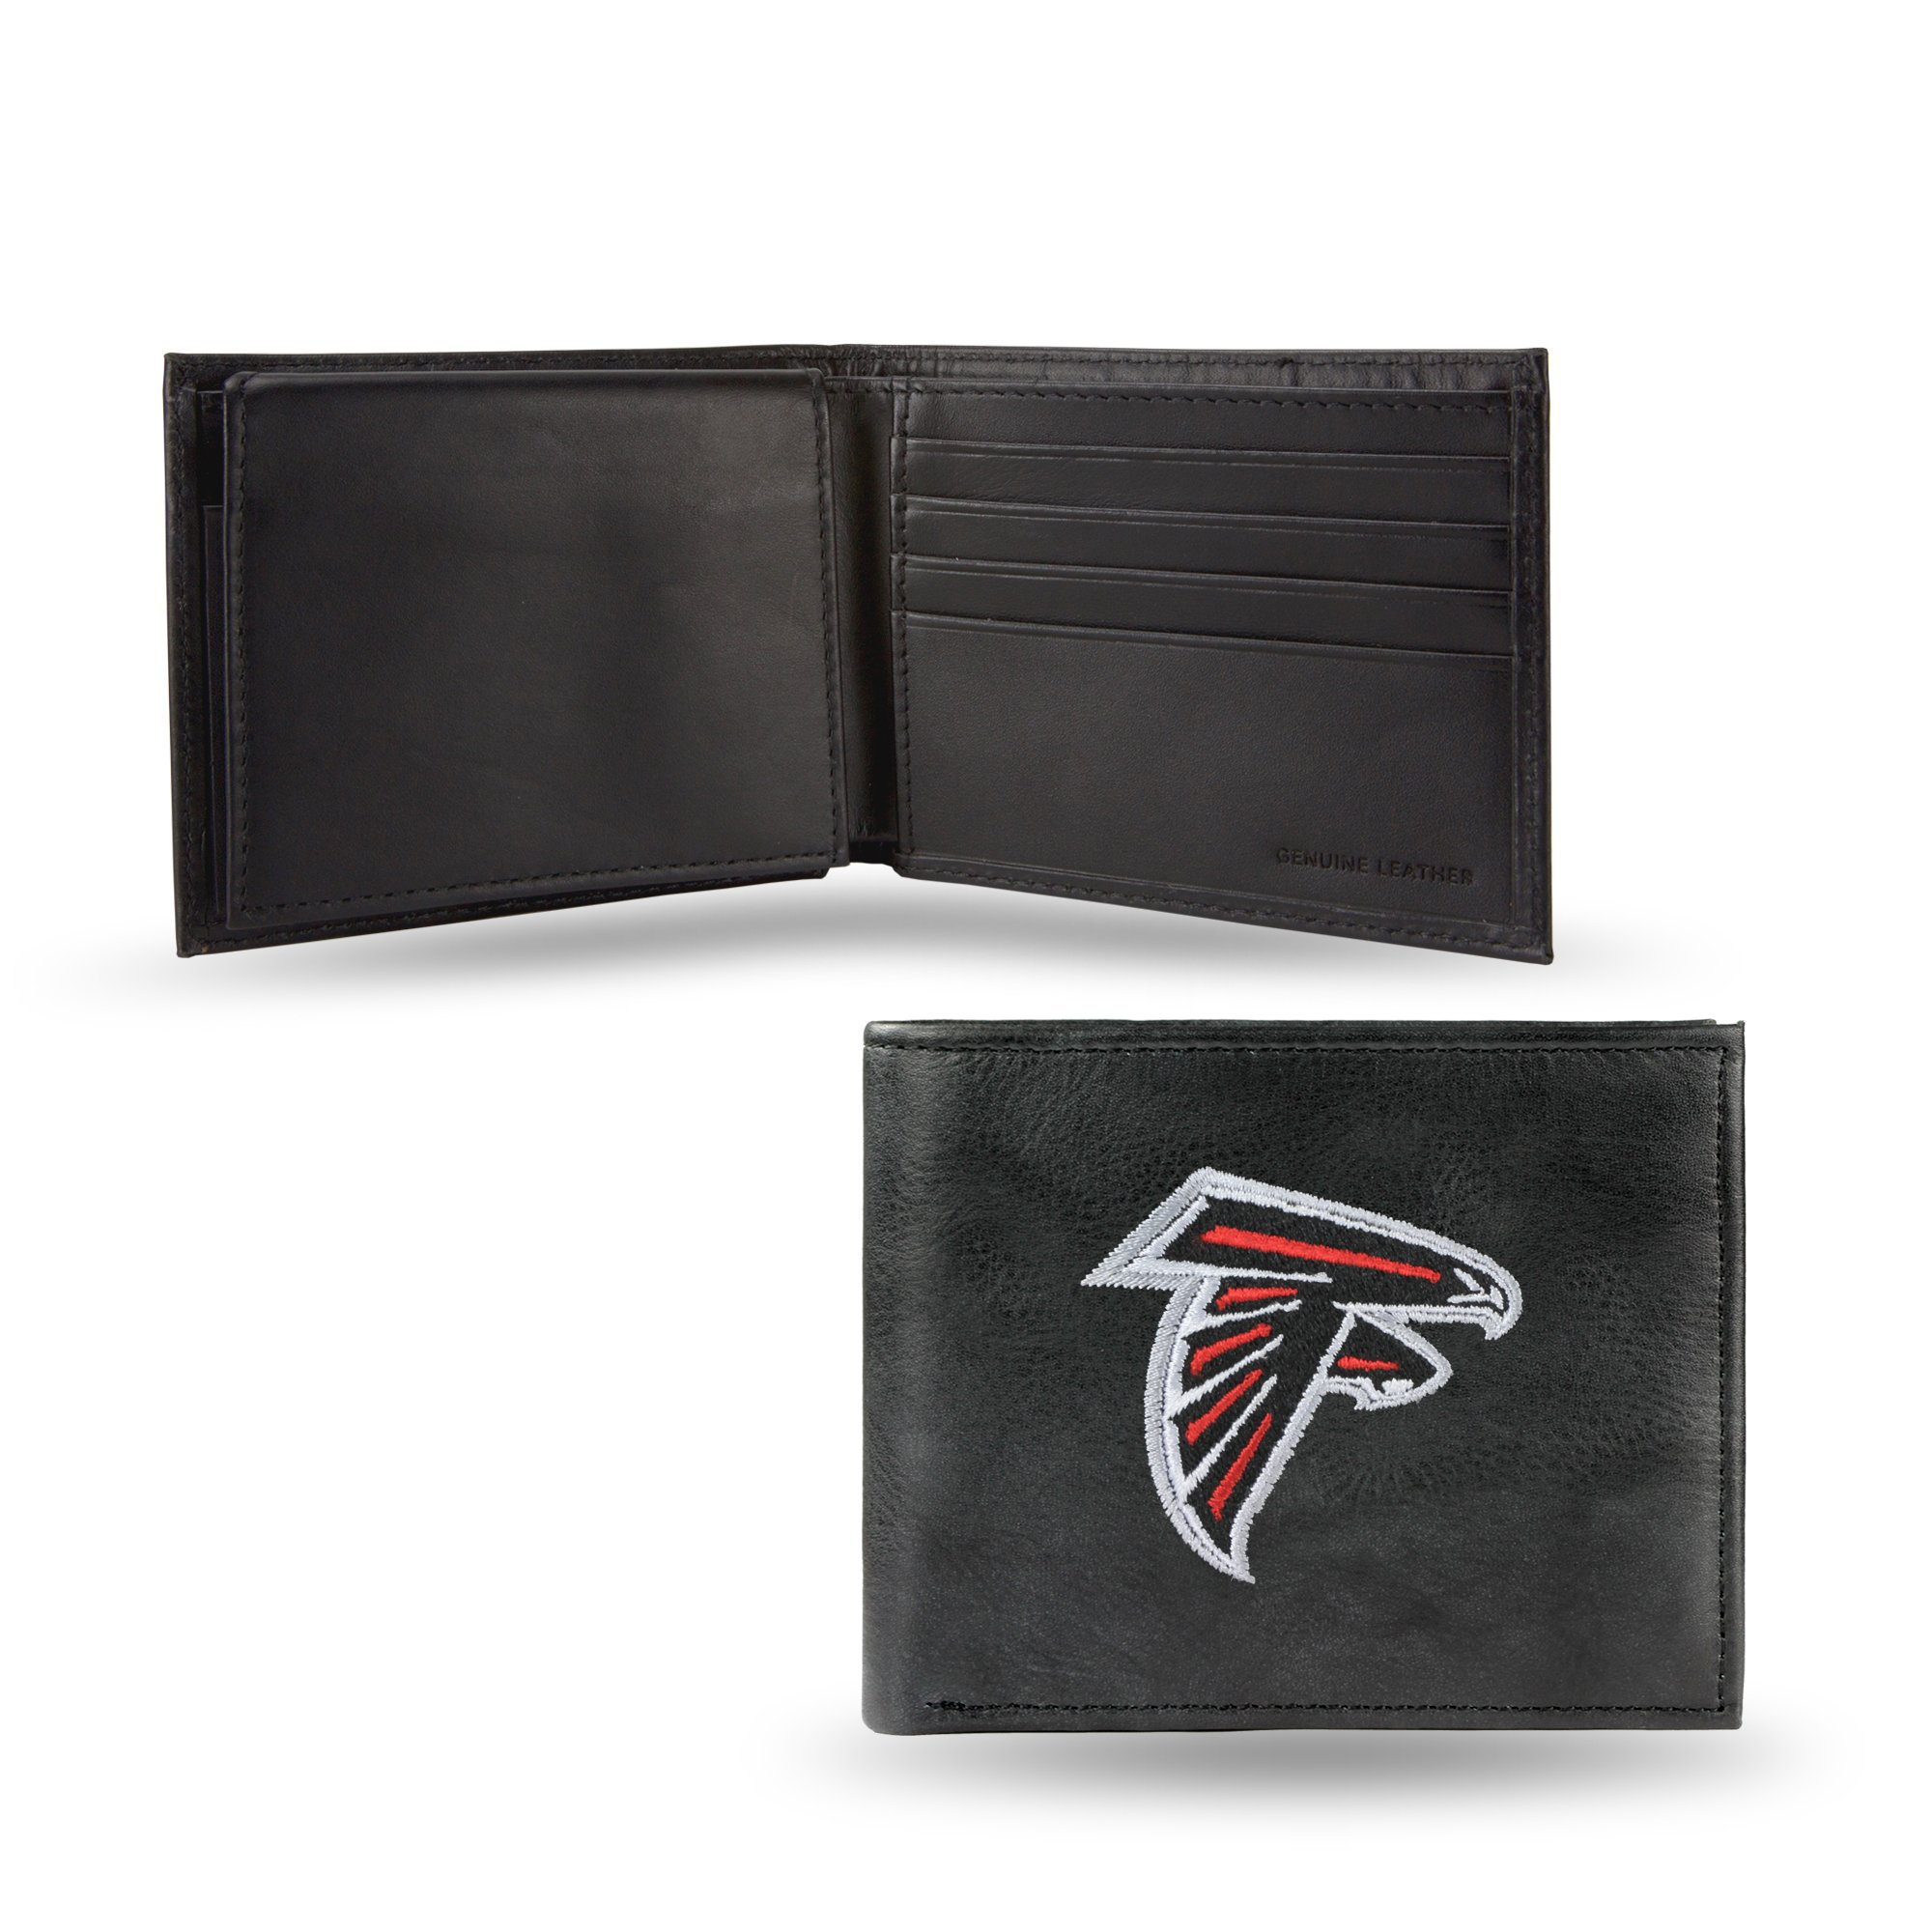 NFL Atlanta Falcons Embroidered Leather Billfold Wallet